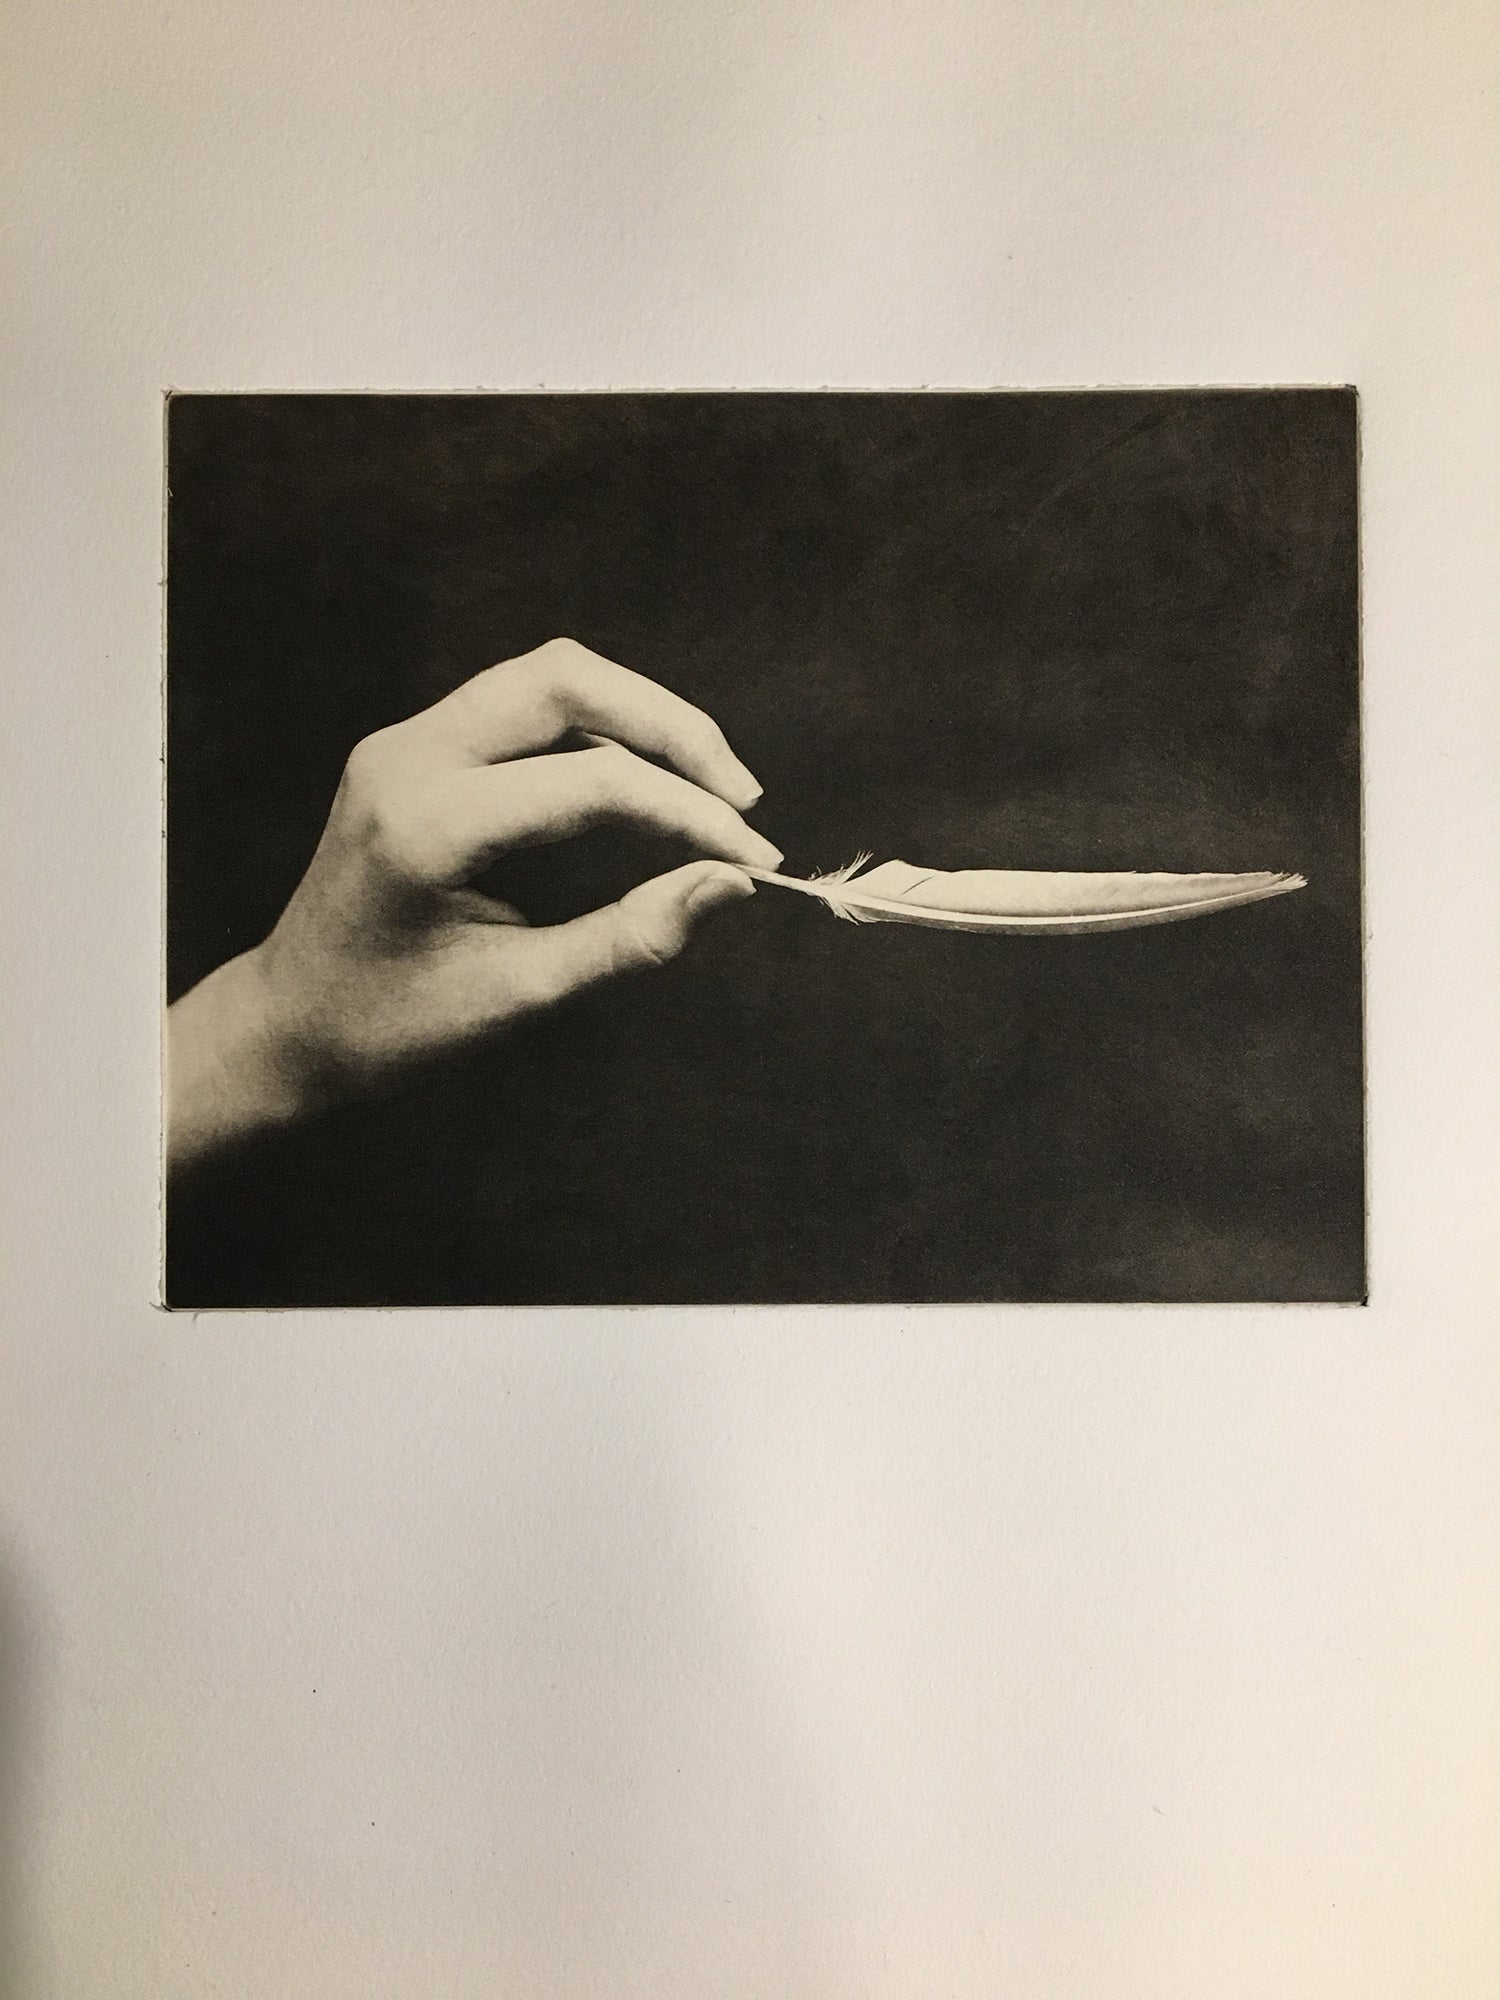 Lighten   - Polymer photogravure print - Edition 2021